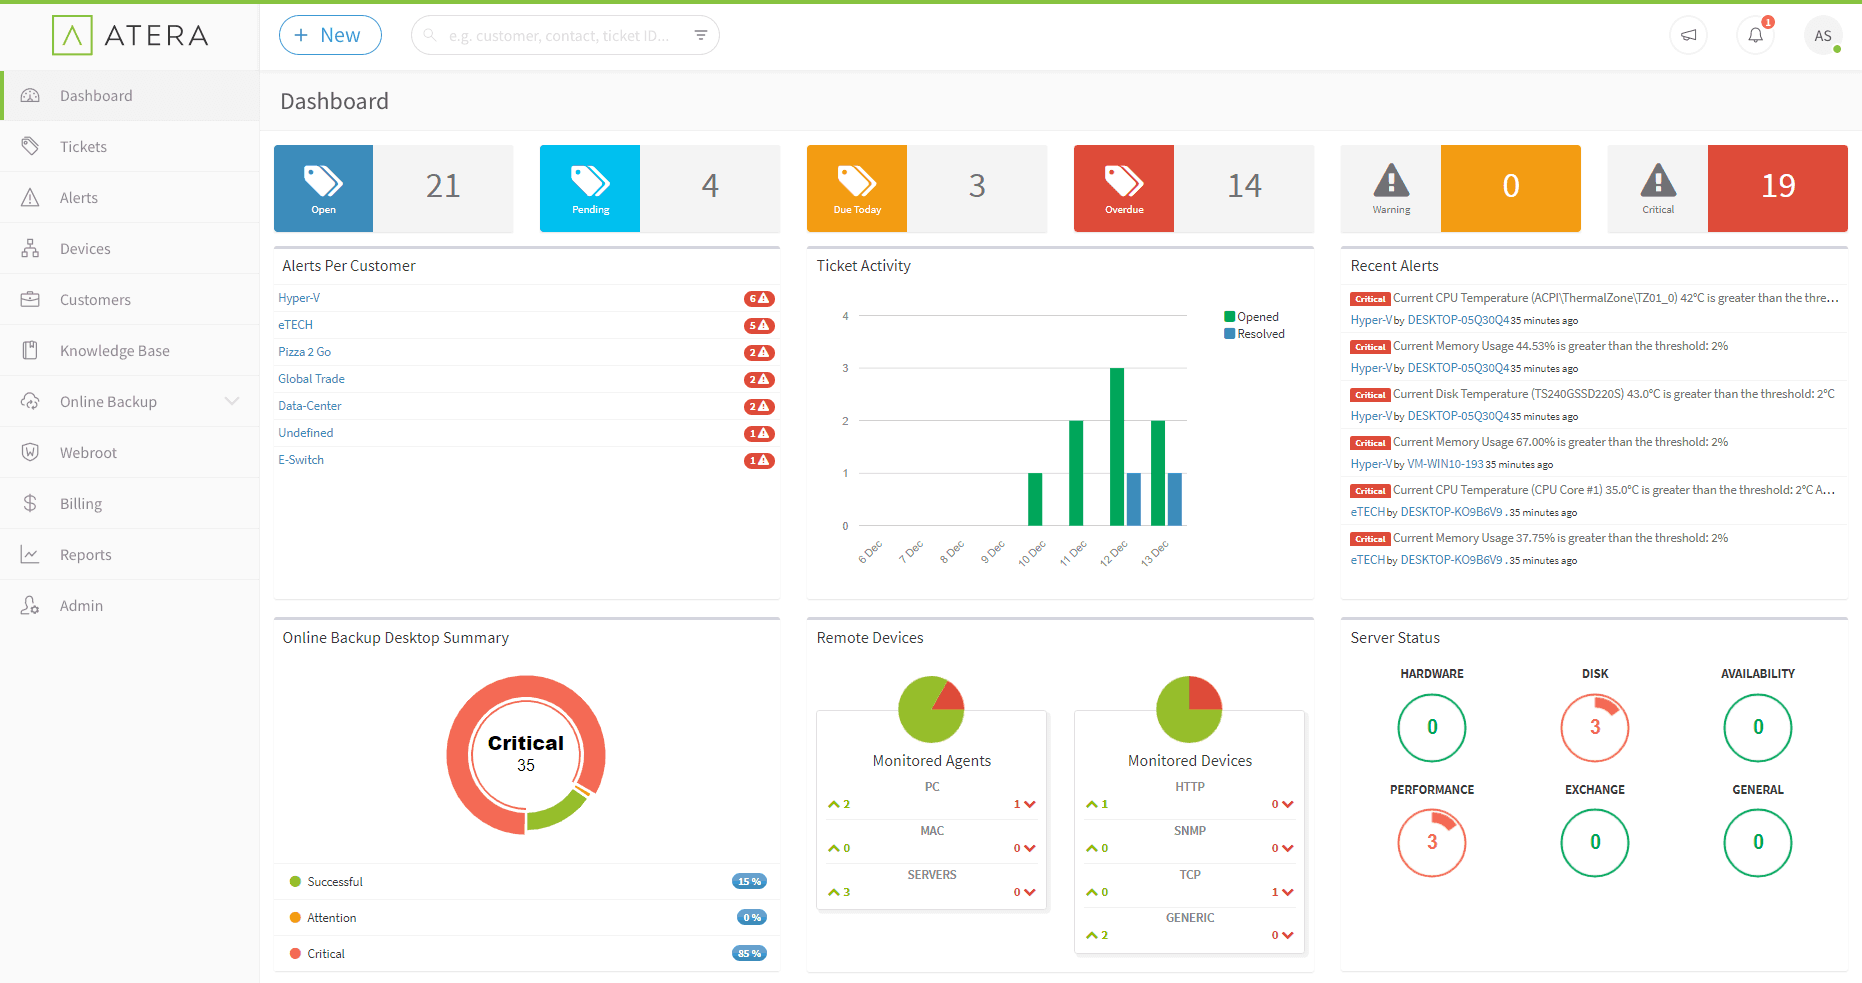 Atera's RMM software dashboard, manage alerts, scripts, tickets, remotely connect and more in one place - It is truly the best RMM and PSA for MSPs